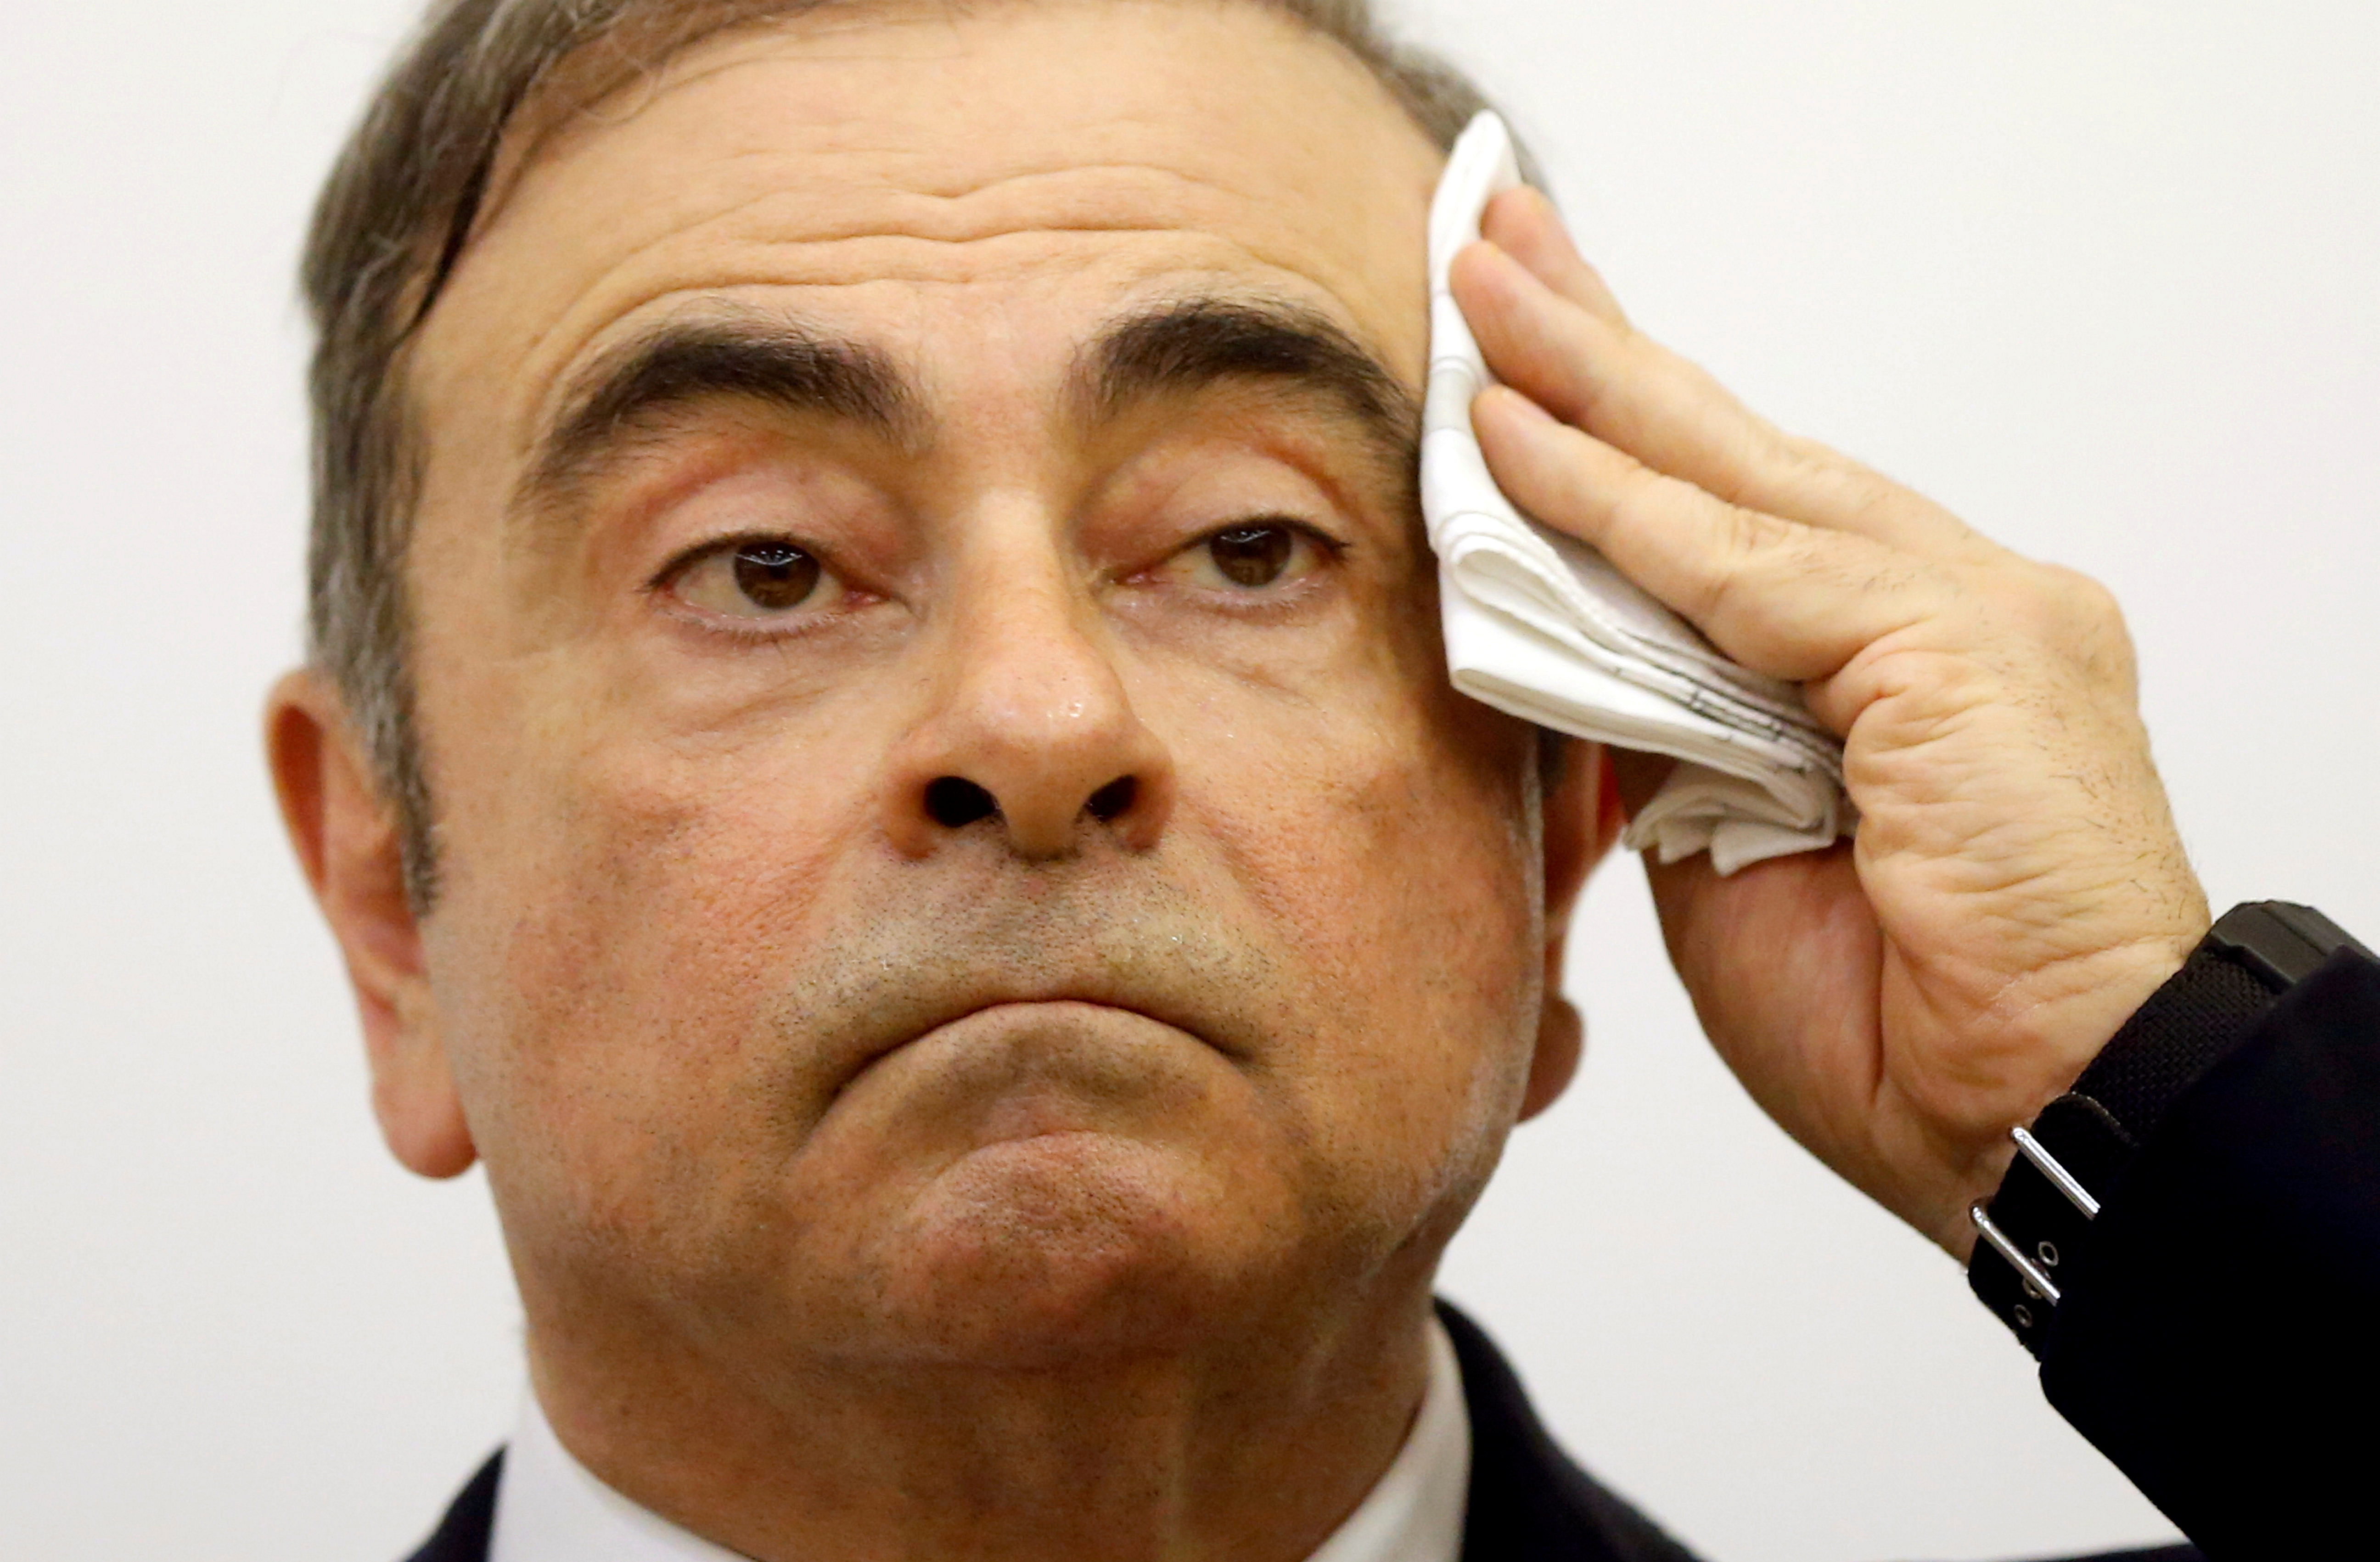 File photo: Former Nissan chairman Carlos Ghosn gestures during a news conference at the Lebanese Press Syndicate in Beirut, Lebanon January 8, 2020. REUTERS/Mohamed Azakir.